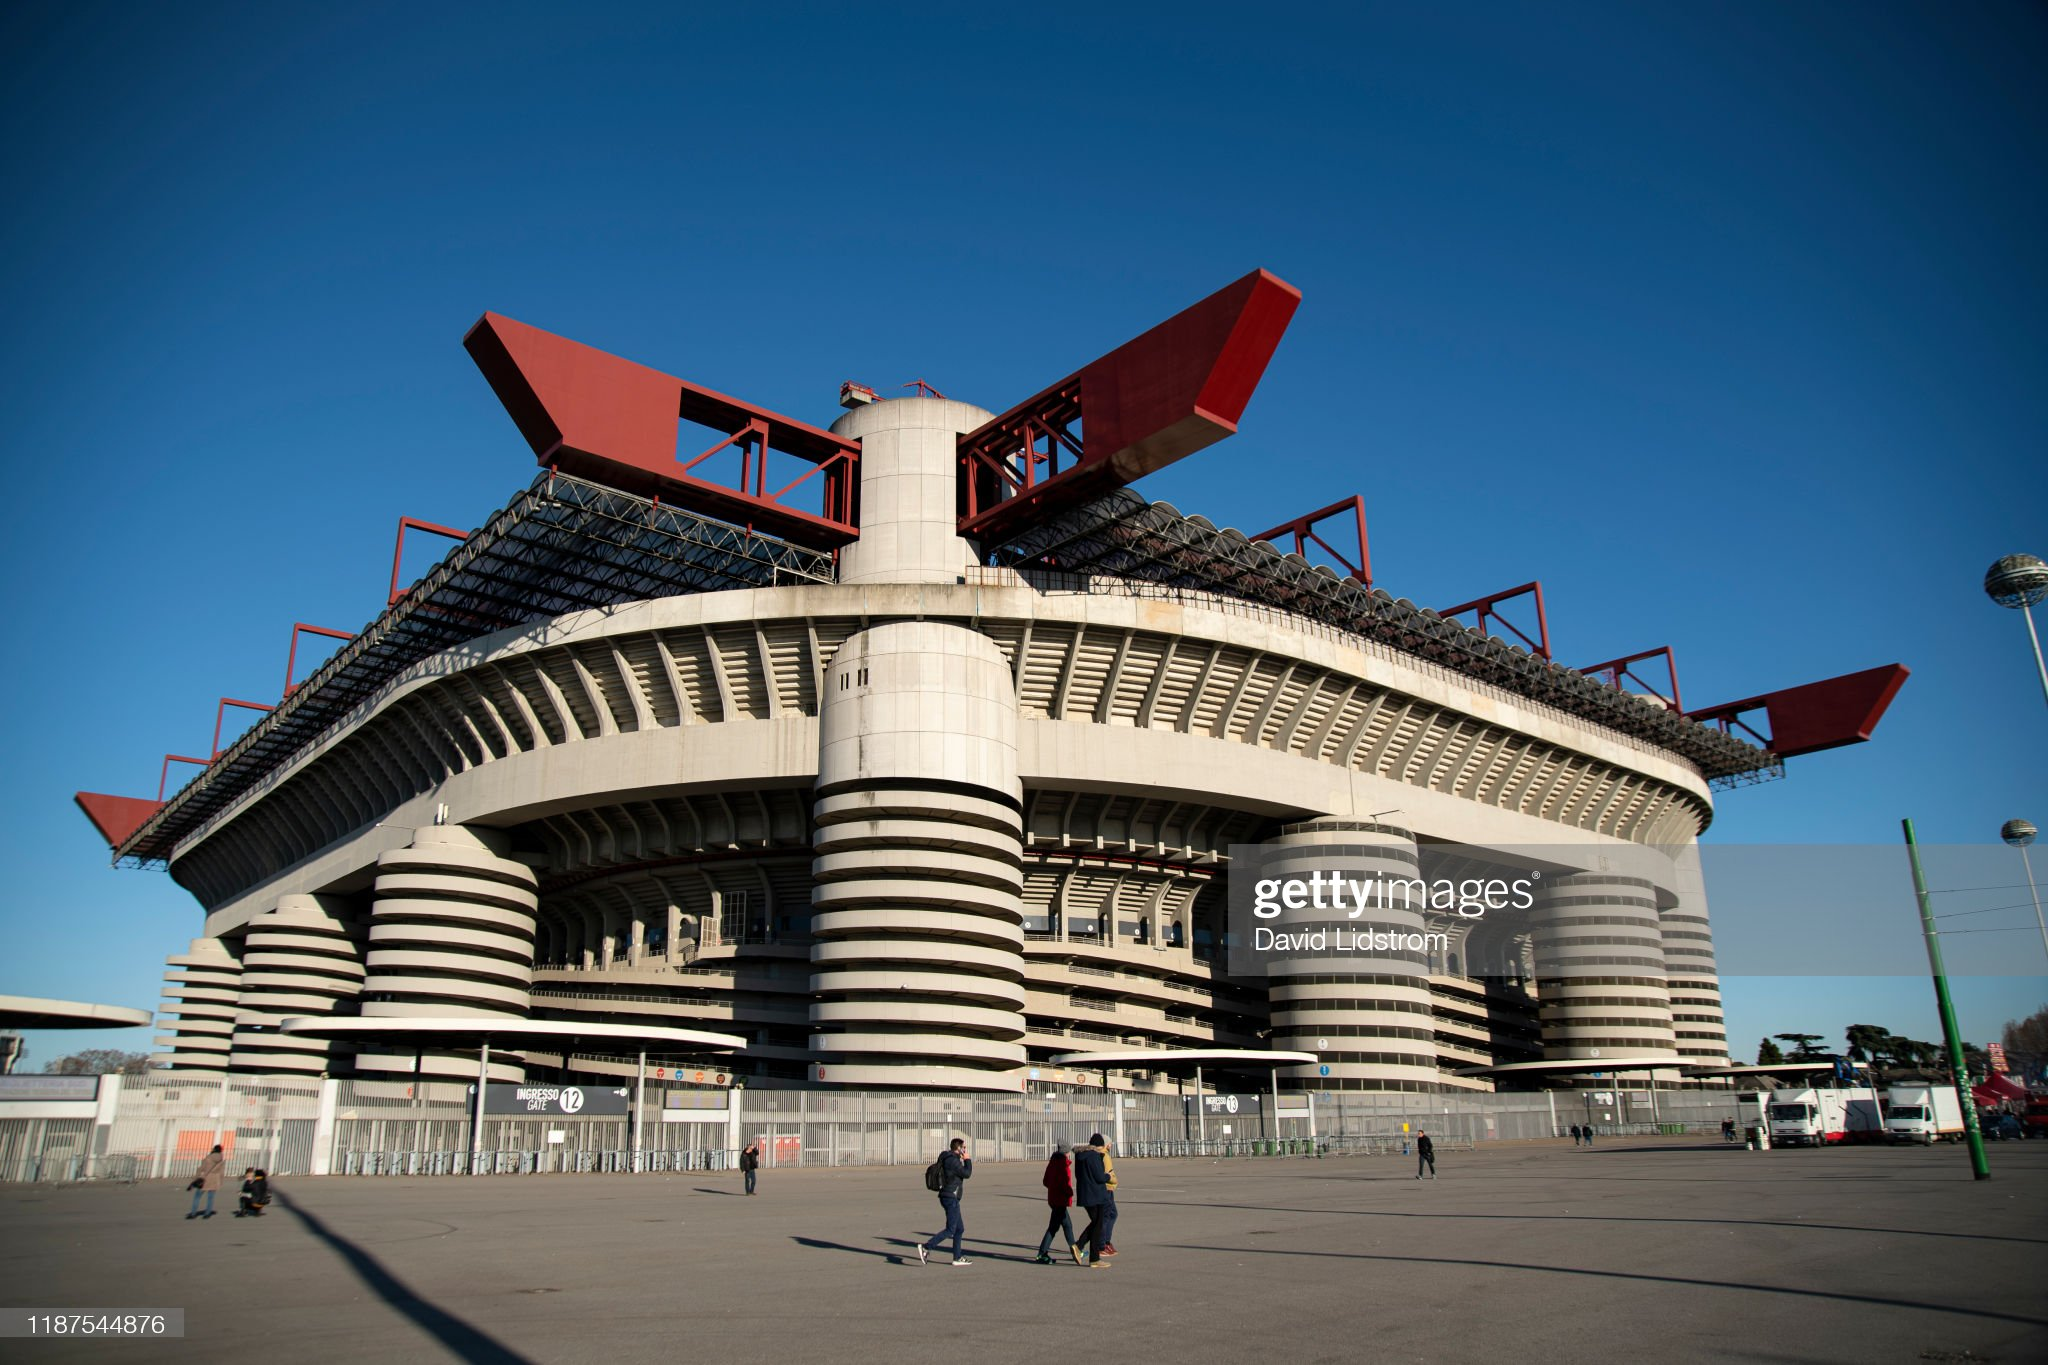 AC Milan v Udinese preview, prediction and odds